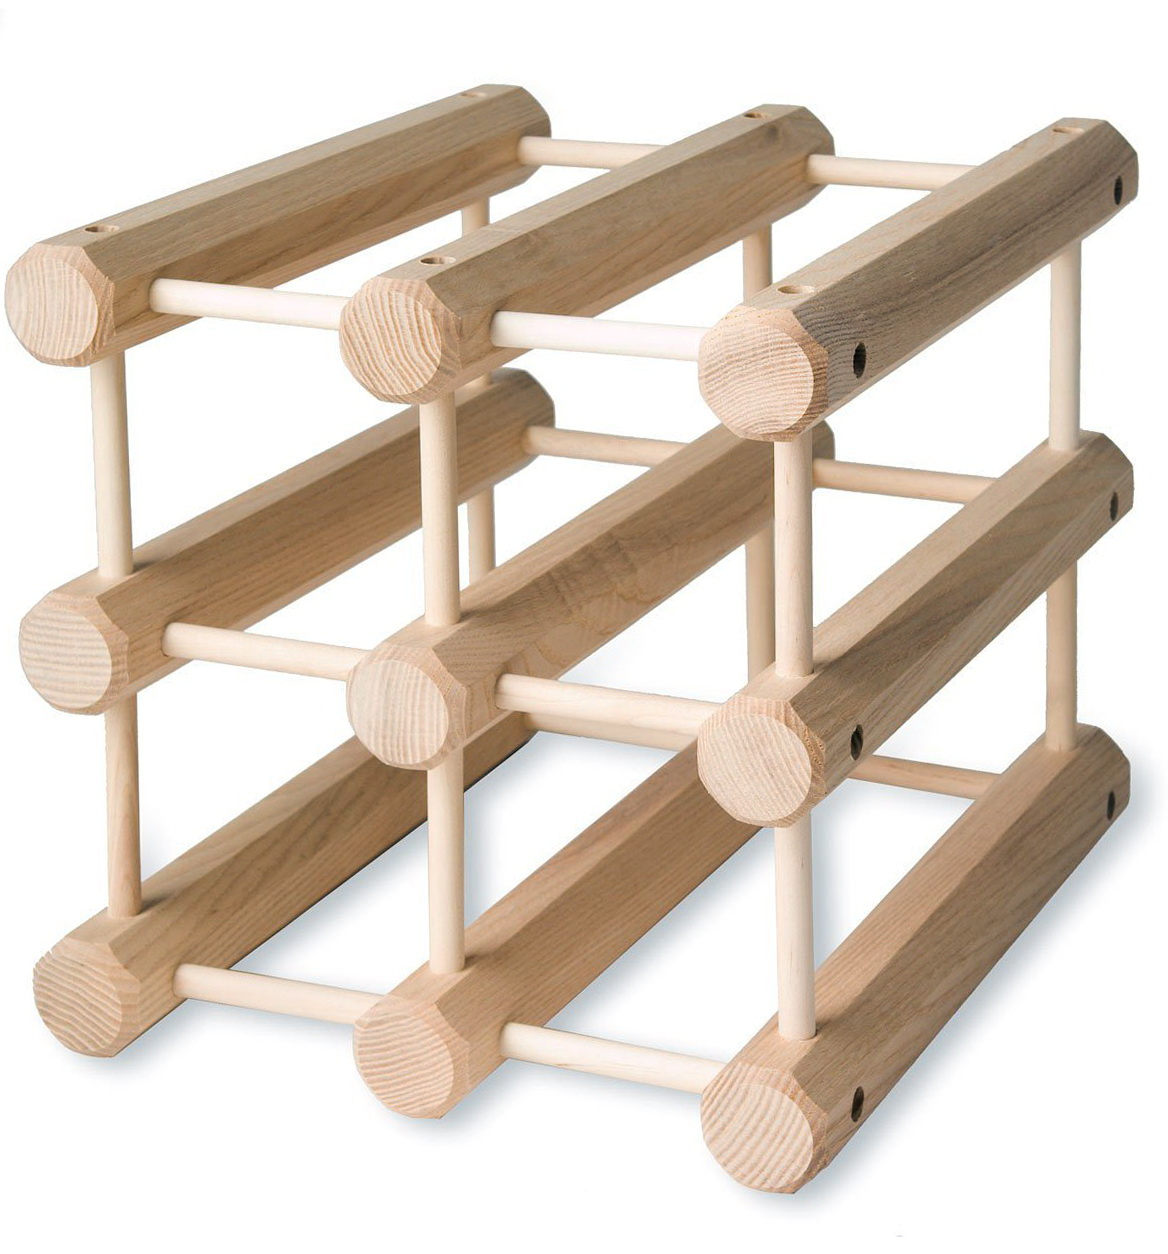 Wooden Wine Racks Ikea Home Design Ideas